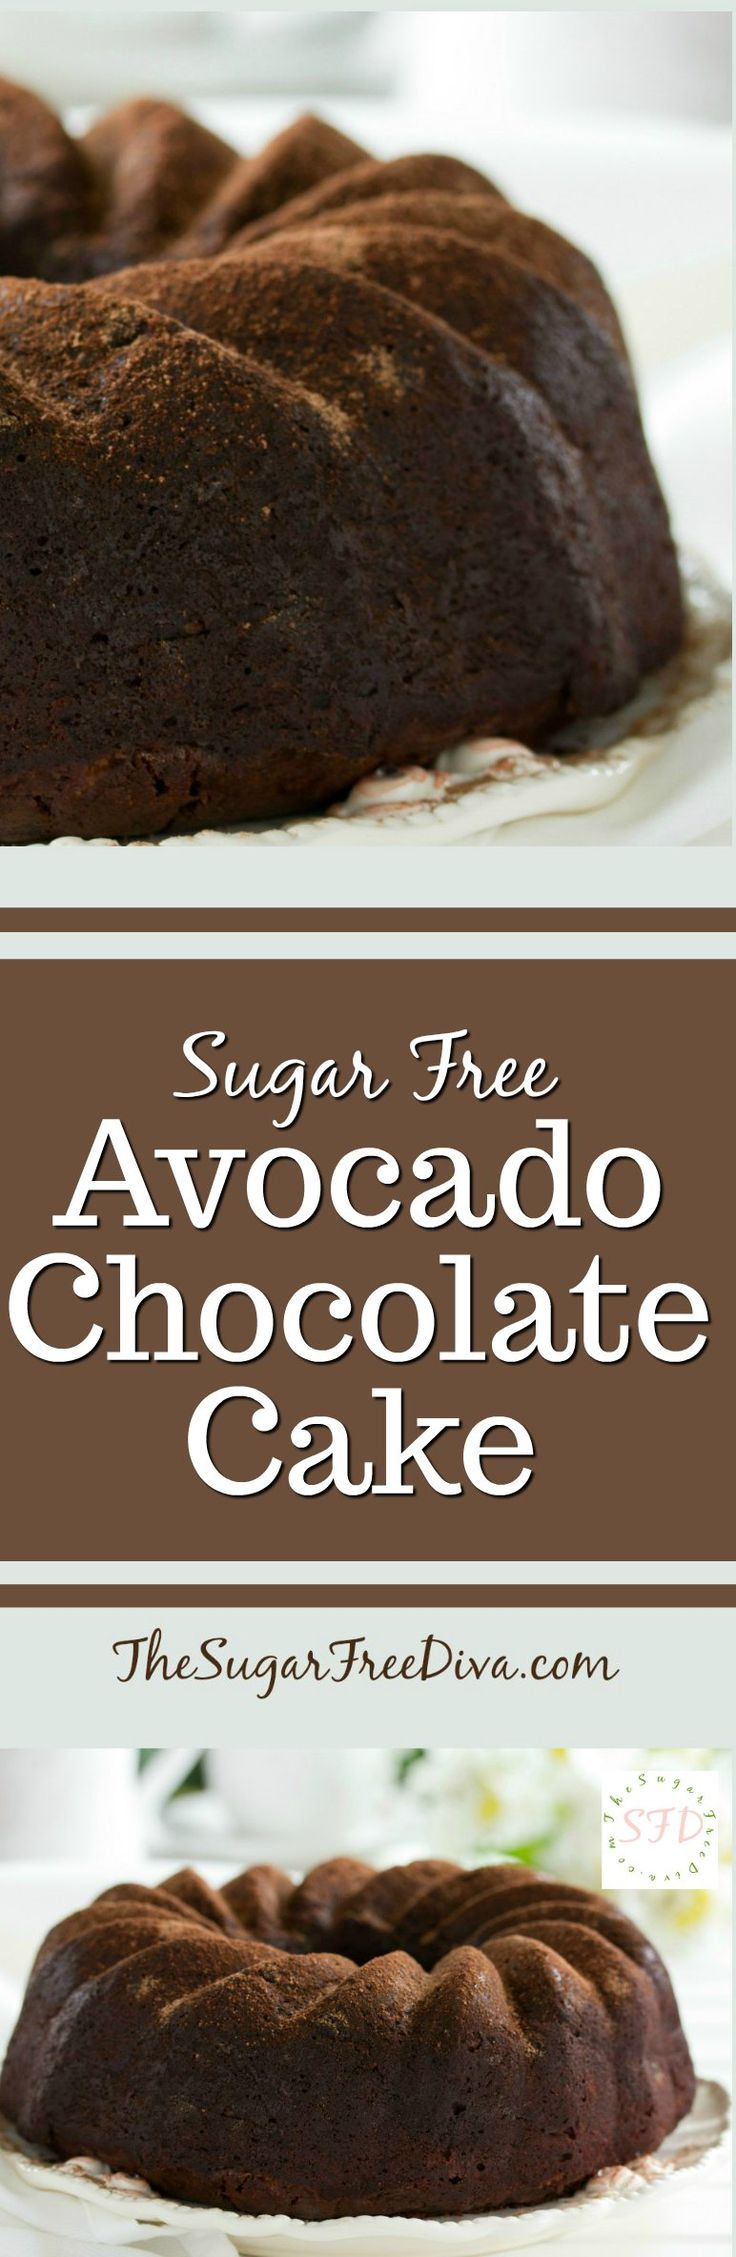 Sugar Free Avocado Chocolate Cake-- you don't even notice the avocado in this recipe. This is a great tasting cake that is perfect for dessert or for brunch or even a party. We love the great tasting chocolate in this easy recipe!